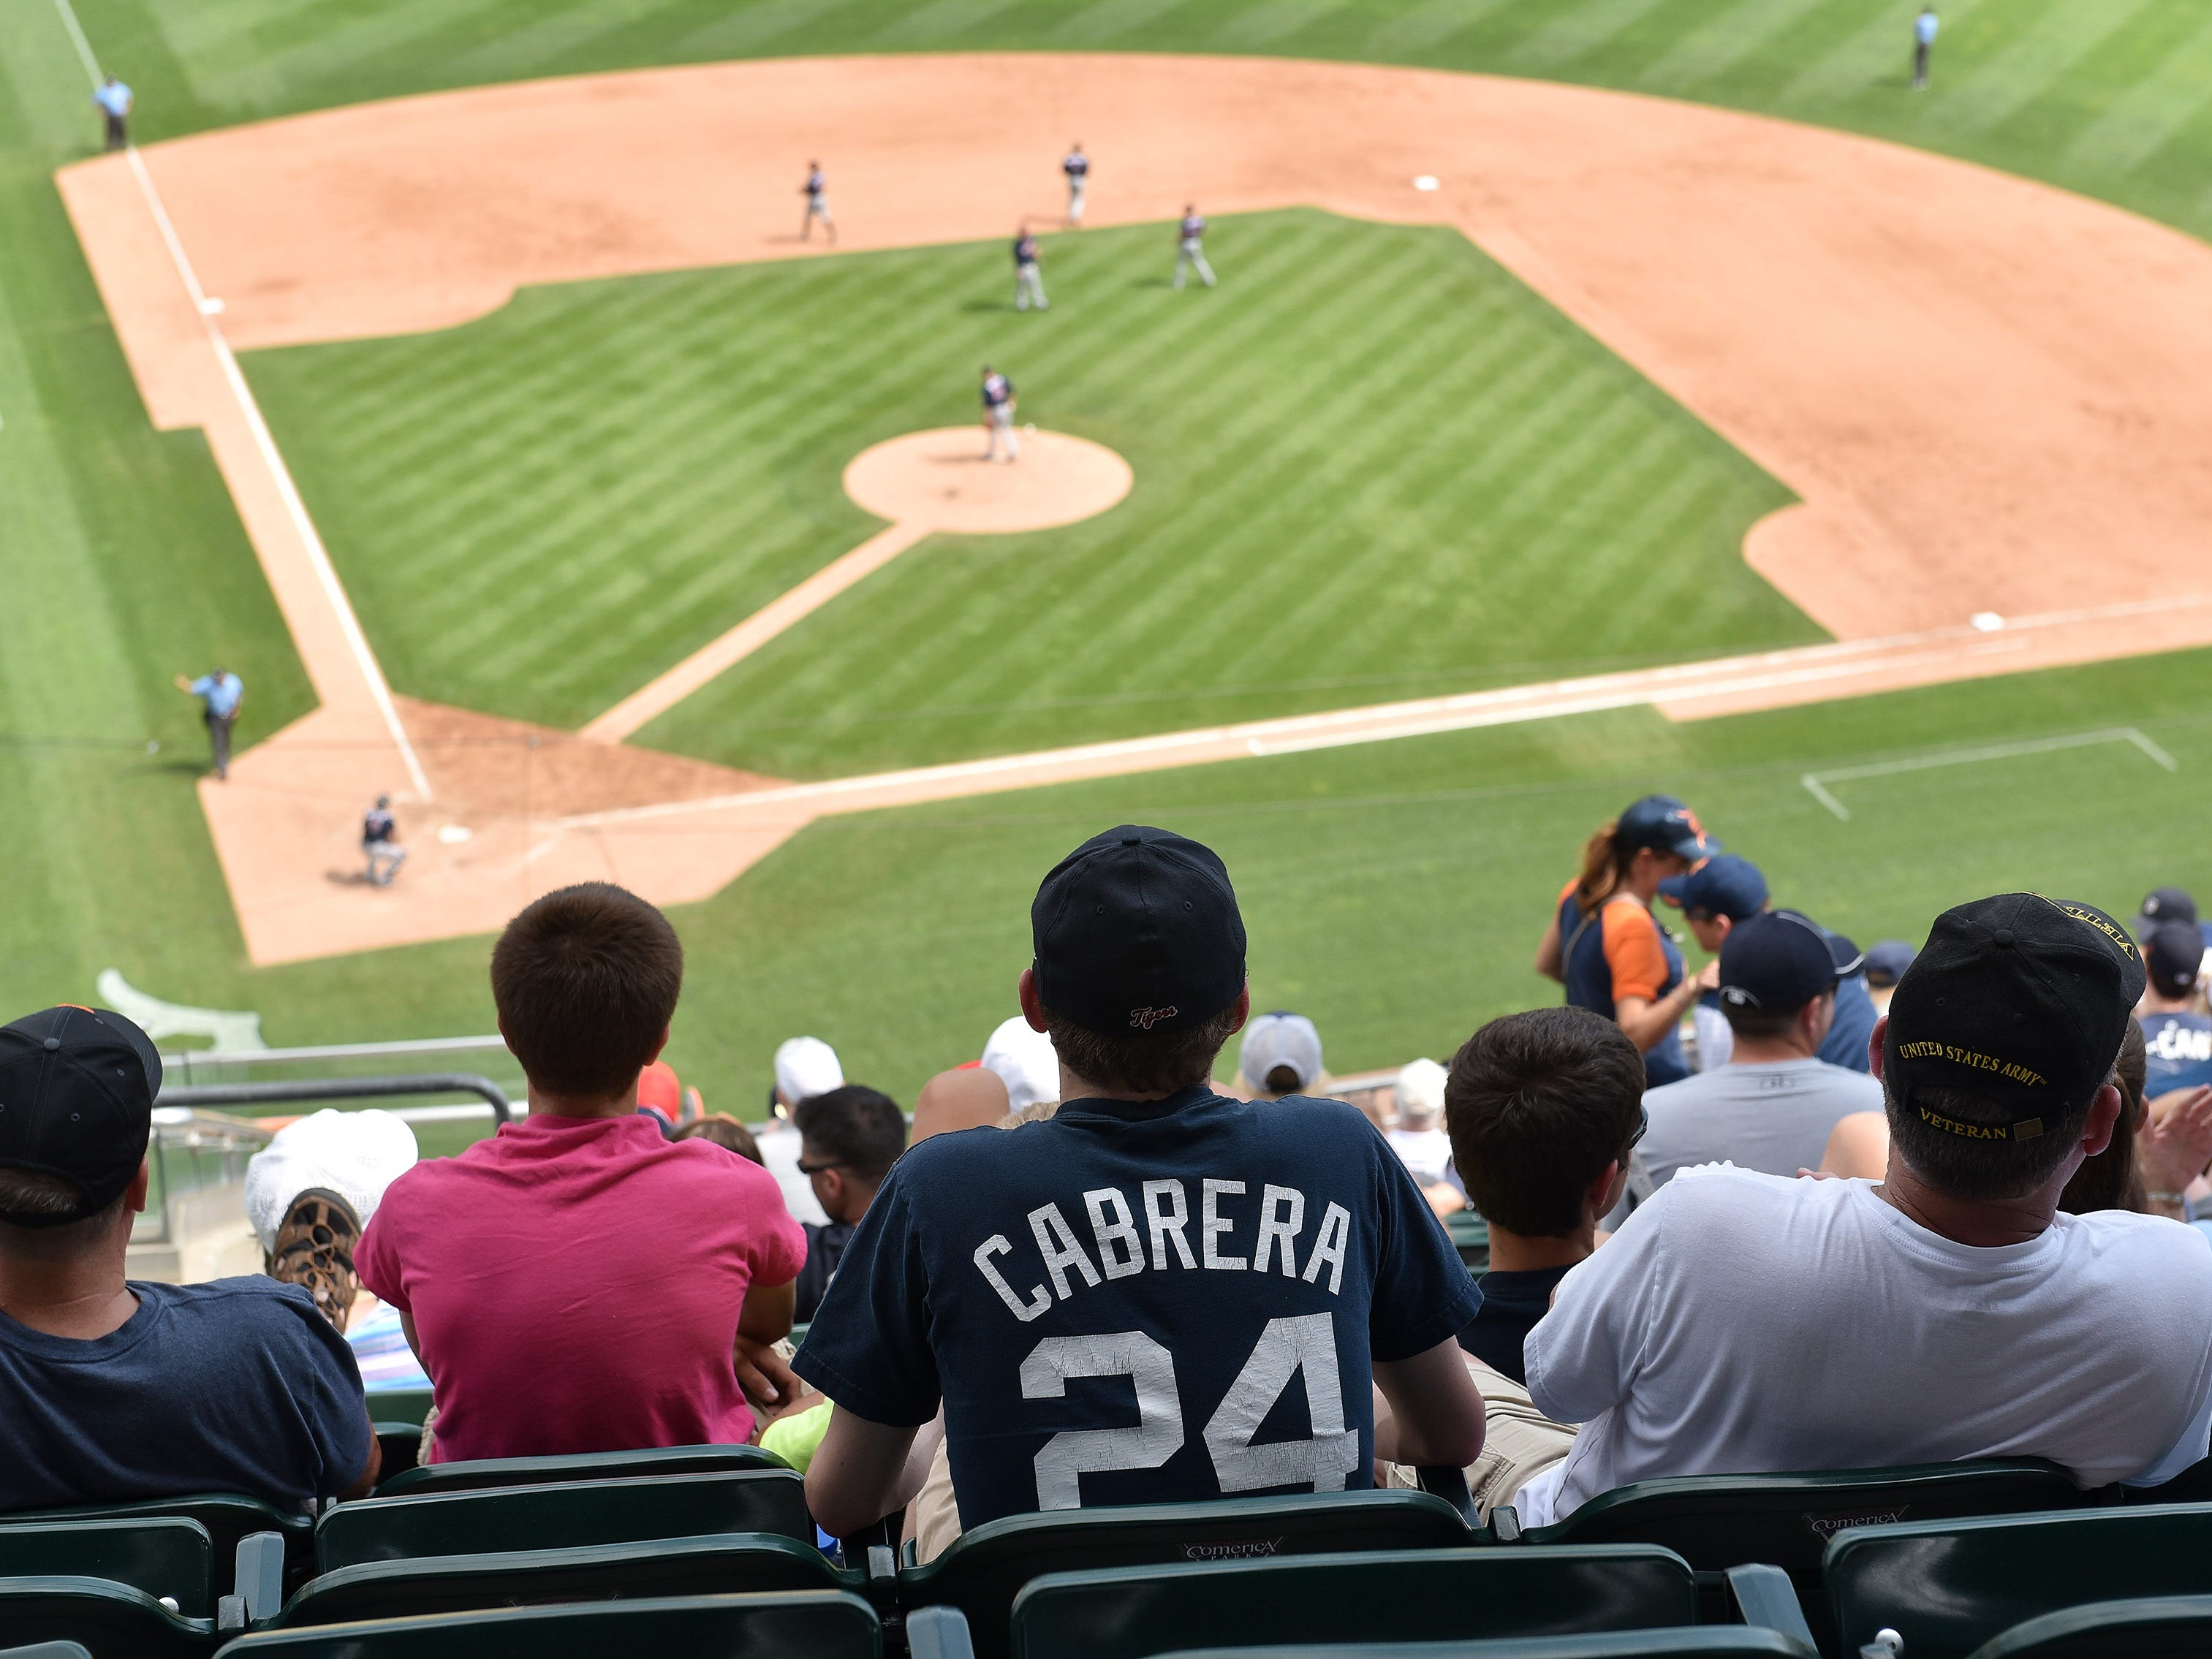 A fan with a Miguel Cabrera shirt sitting up in the shade of the upper deck.